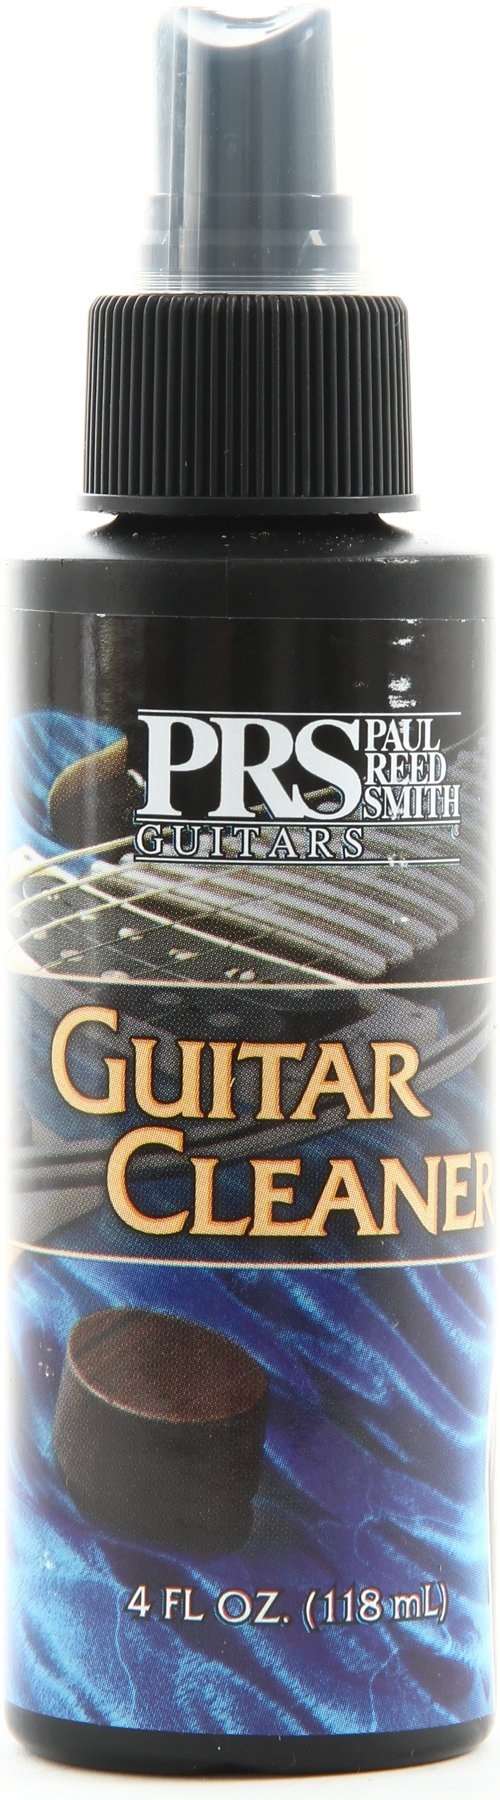 PRS Guitar Cleaner